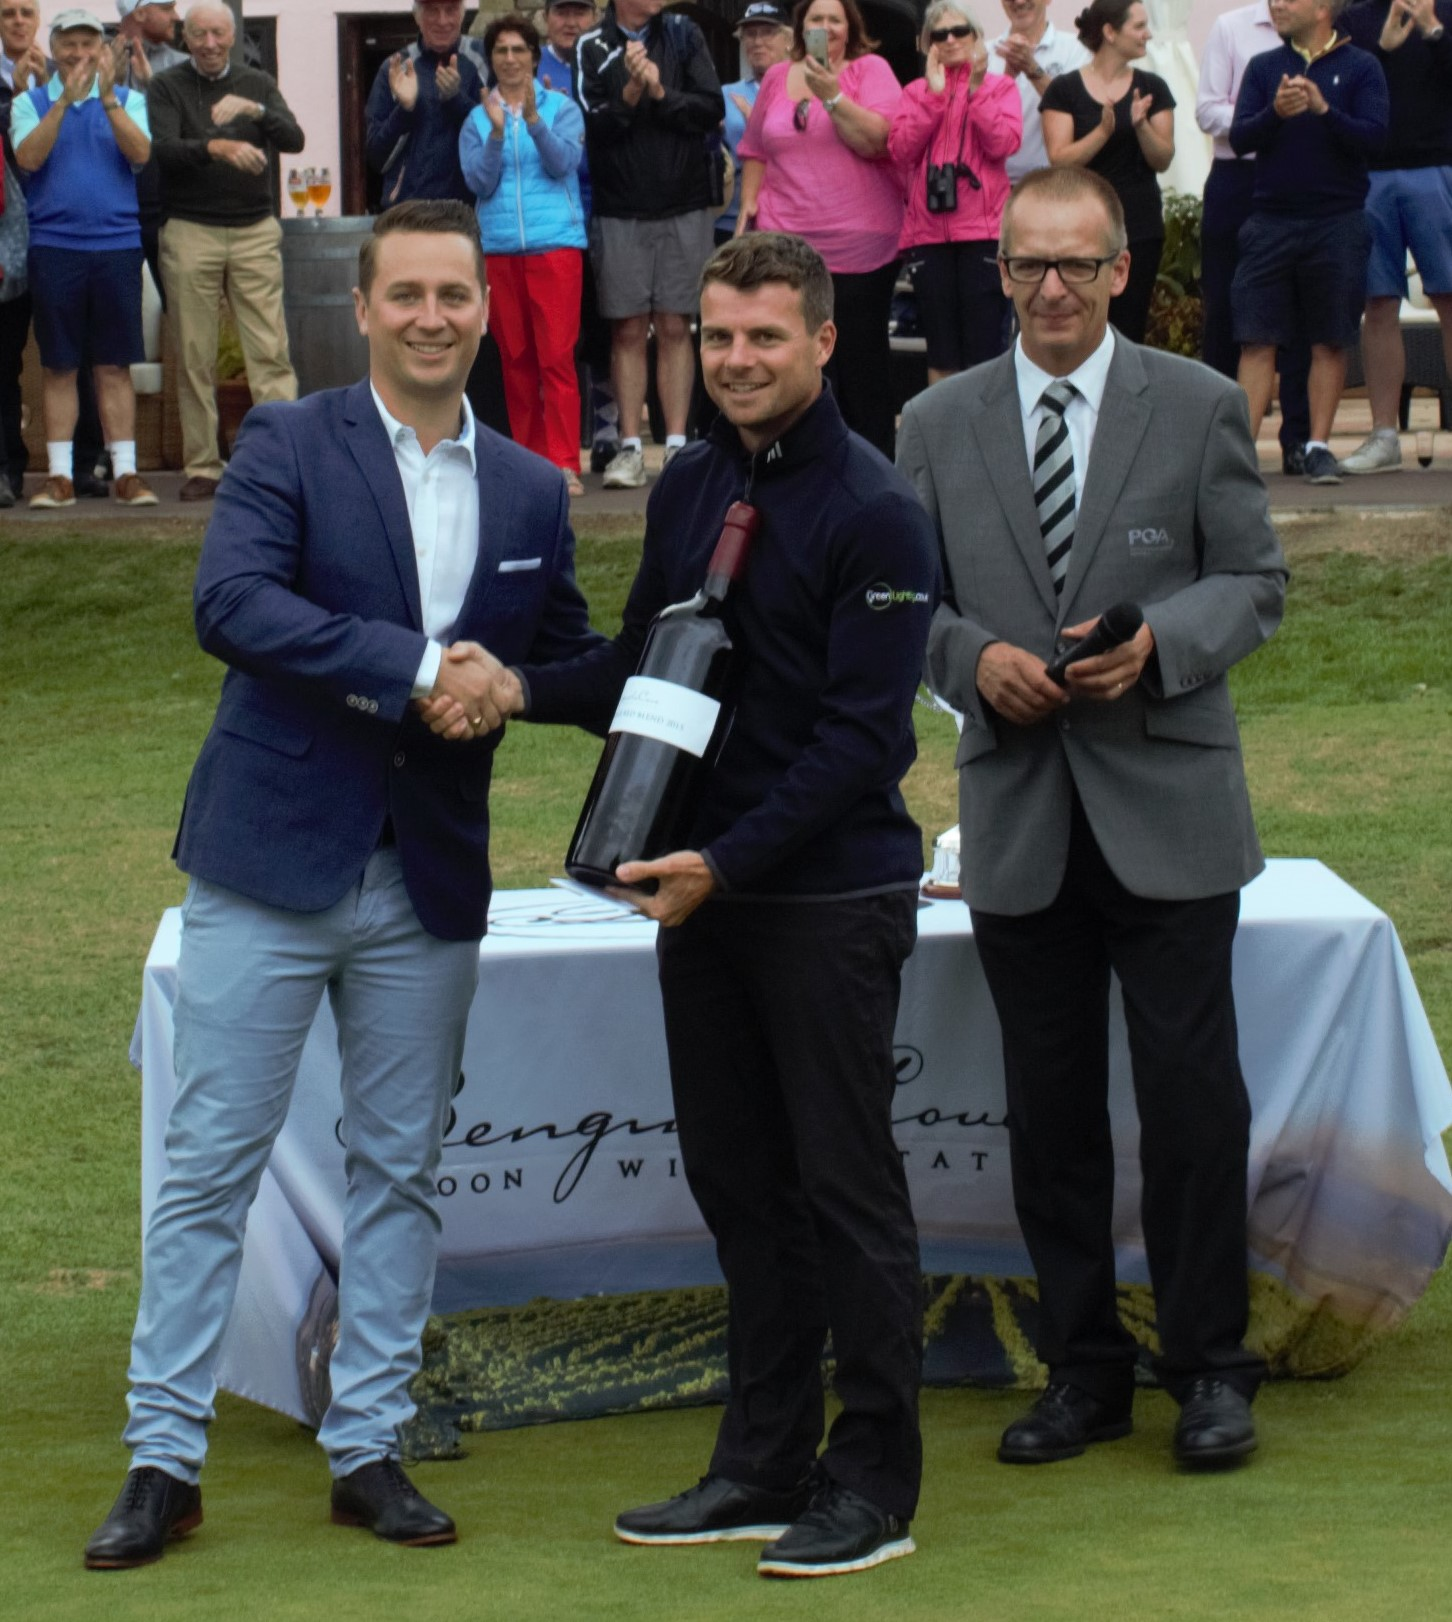 Adam Streeter, Club Operations Diector; Billy Hemstock, tournament winner; and Ash Weller of EuroPro.